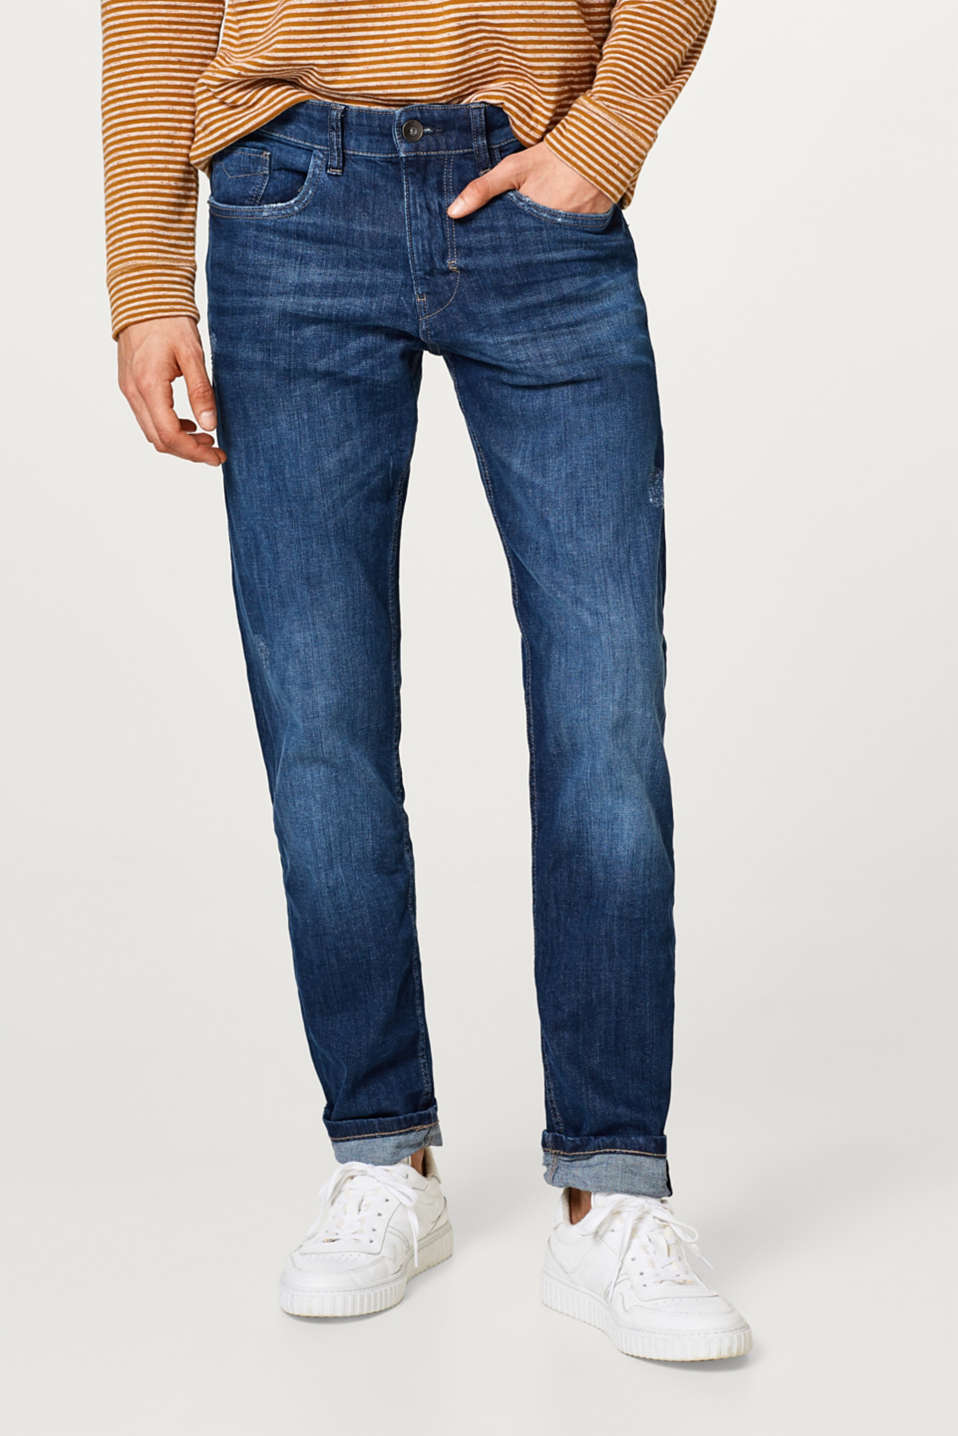 Esprit - Stretch-Denim aus Baumwolle